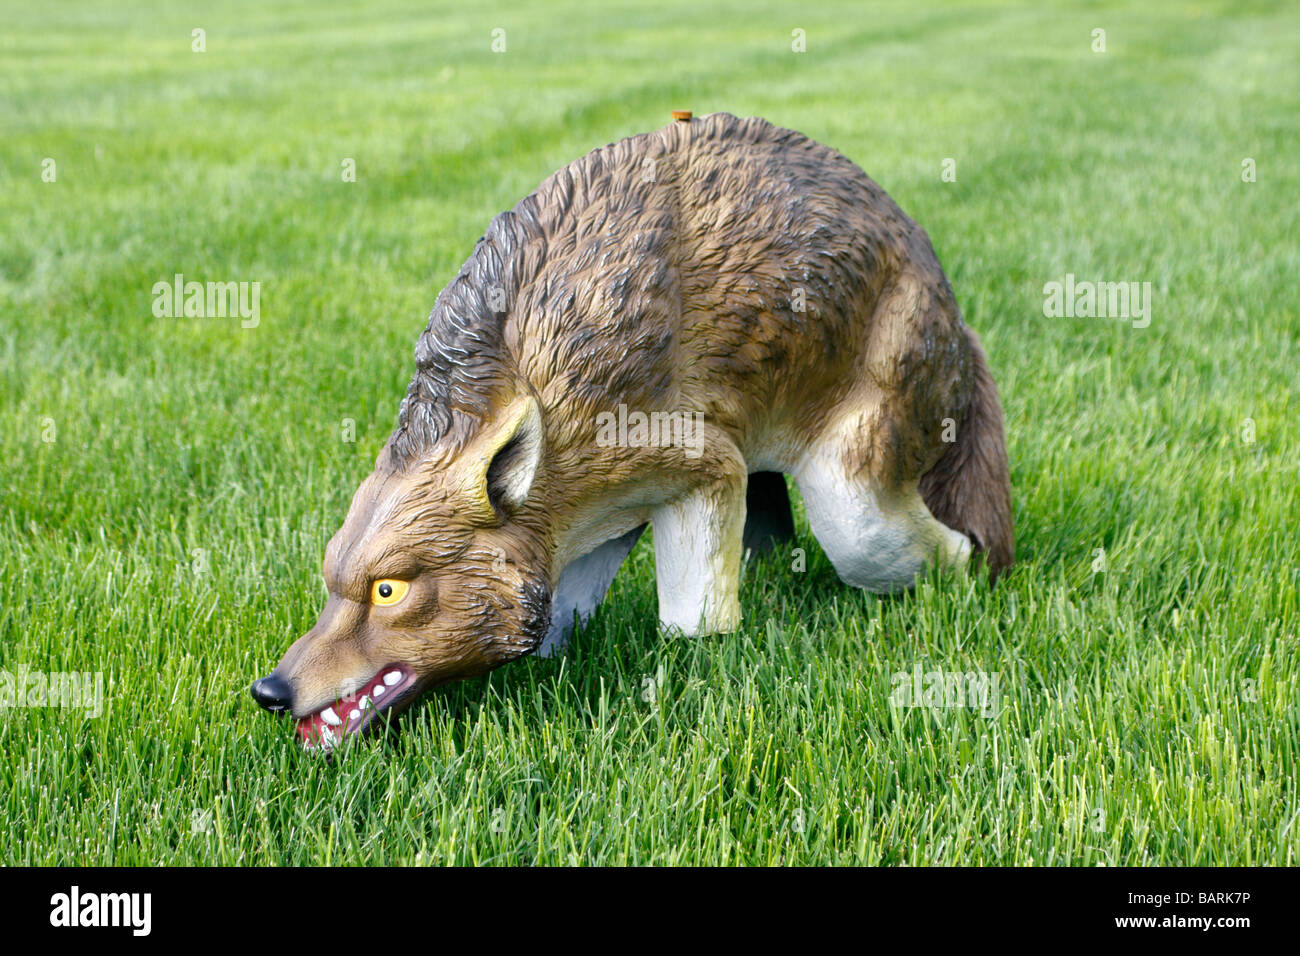 Coyote Statue used to scare away Canada Geese and other animals - Stock Image